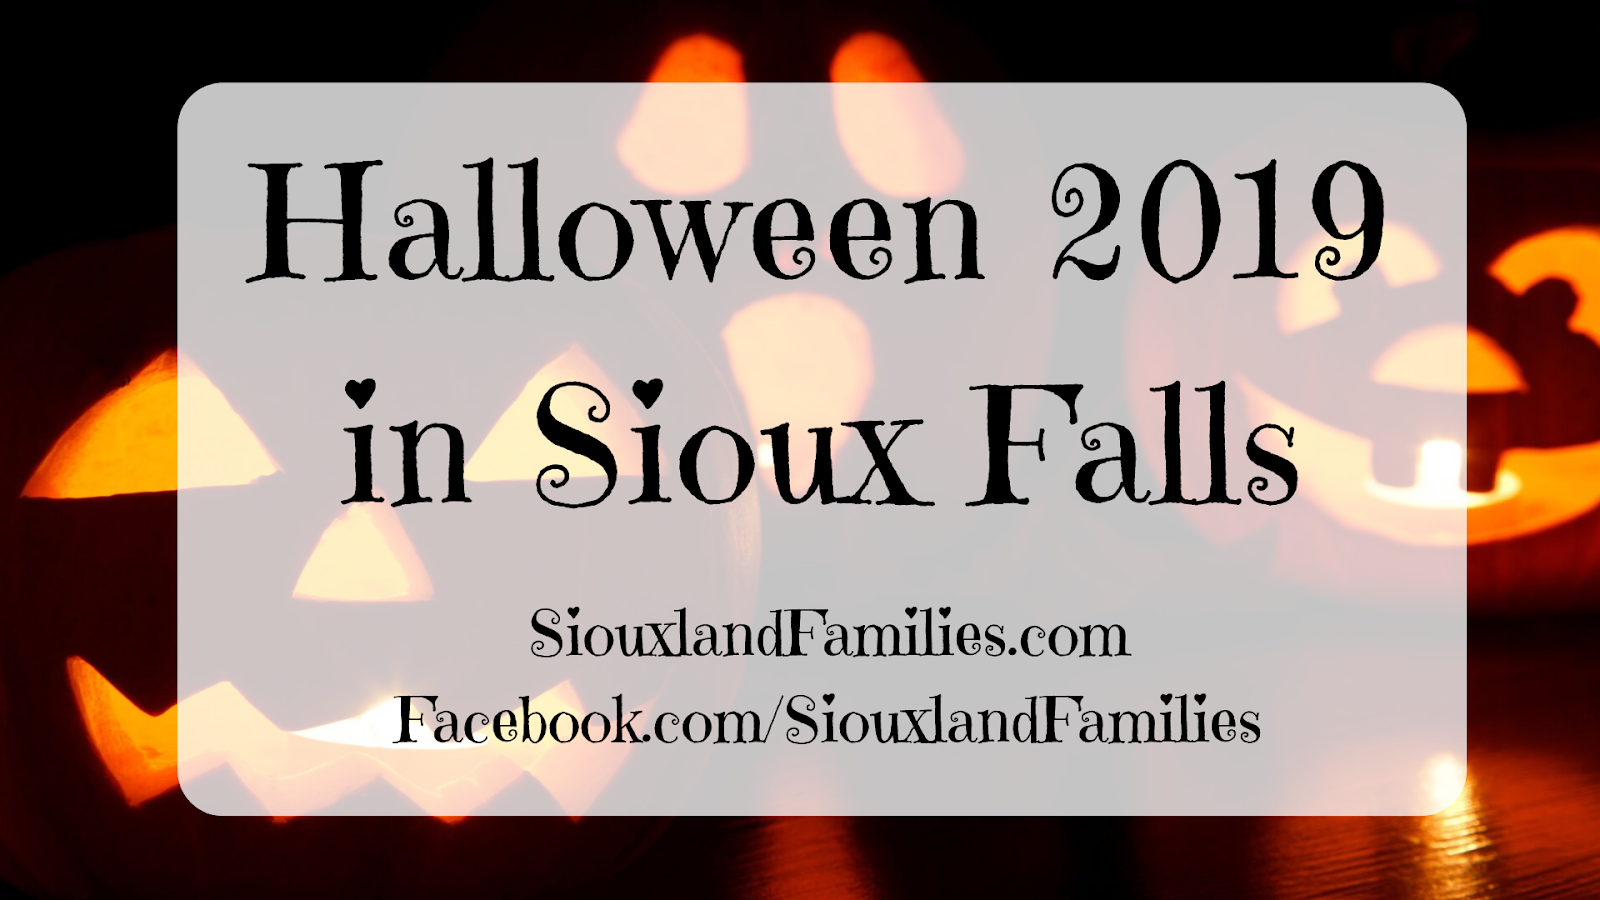 Halloween Events Downtown Sioux Falls Sd 2020 Halloween 2019 in Sioux Falls